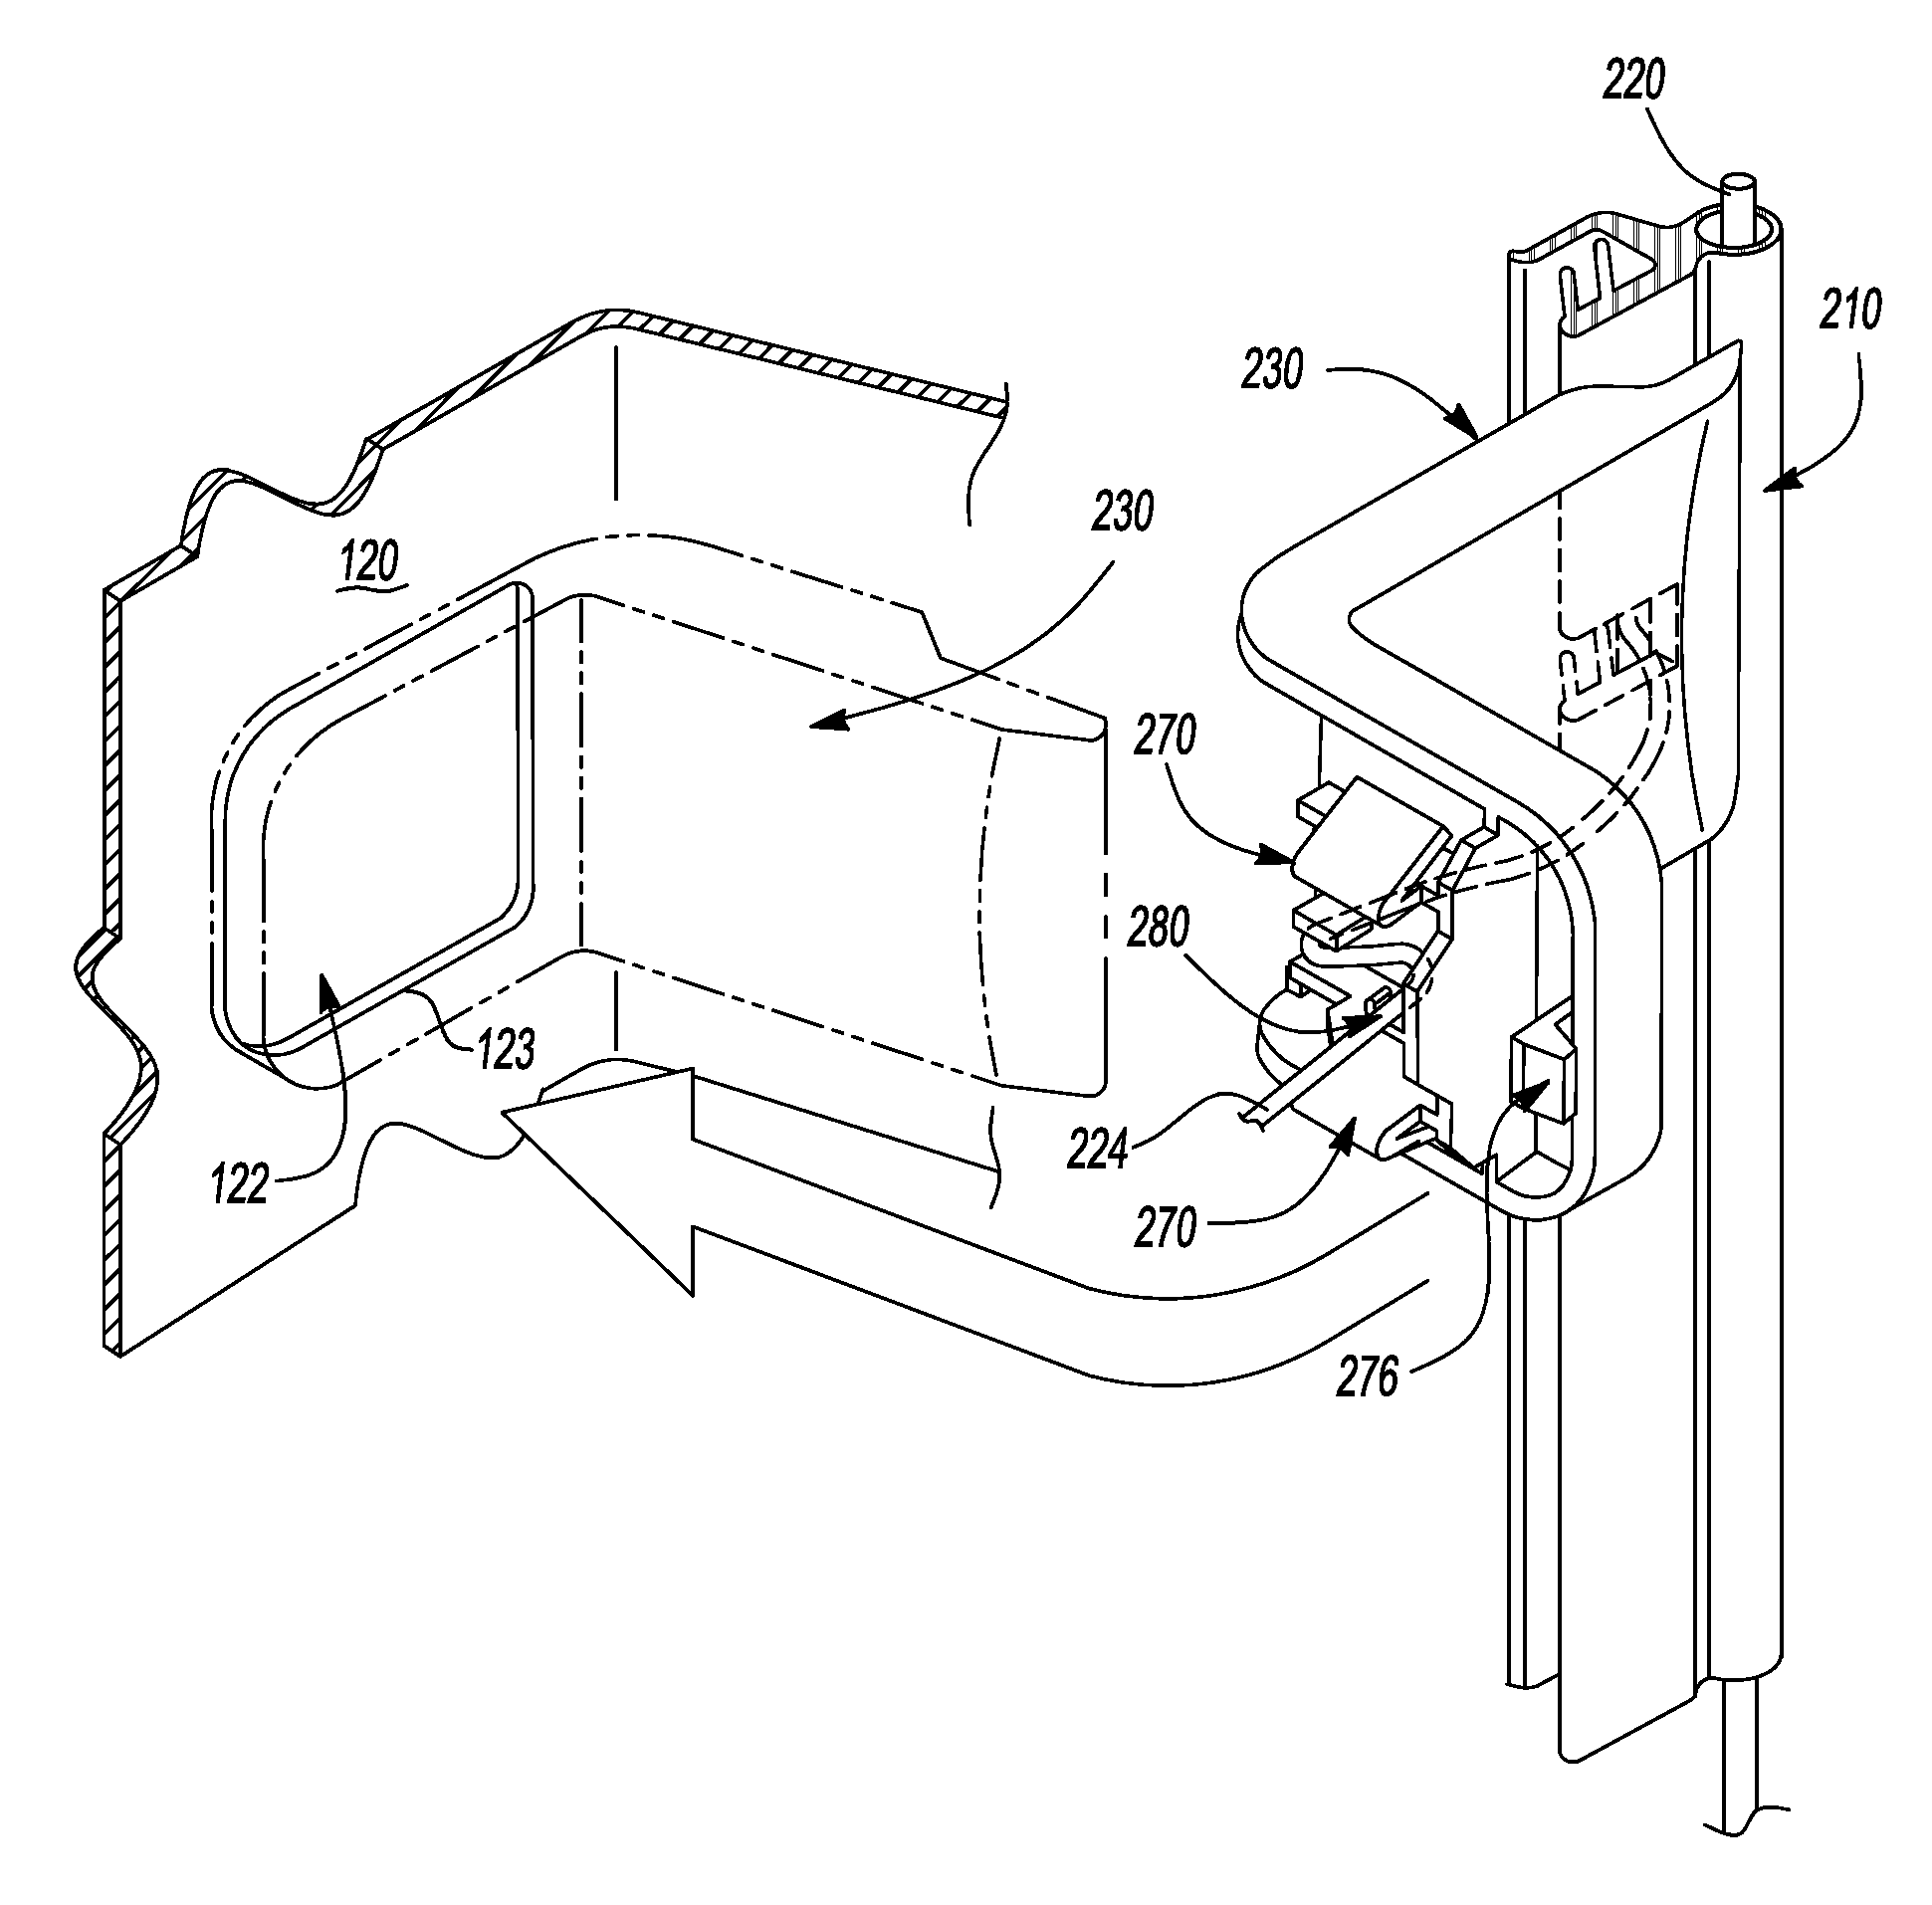 patent us8348330 - wire harness protector and touch sensor assembly